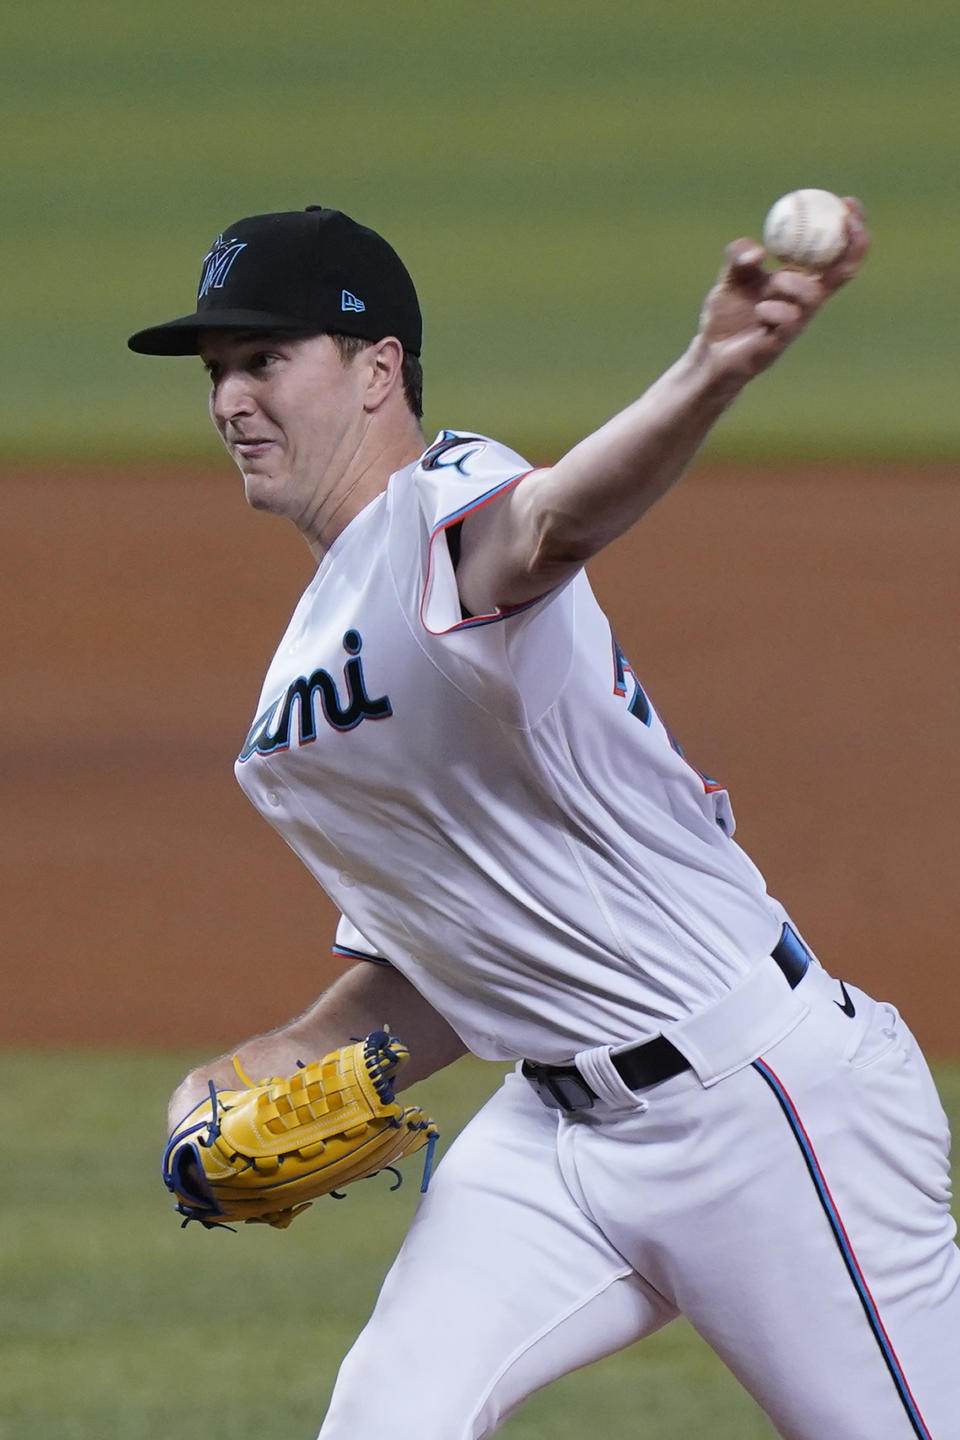 Miami Marlins' Trevor Rogers pitches during the first inning of a baseball game against the Philadelphia Phillies, Monday, May 24, 2021, in Miami. (AP Photo/Wilfredo Lee)